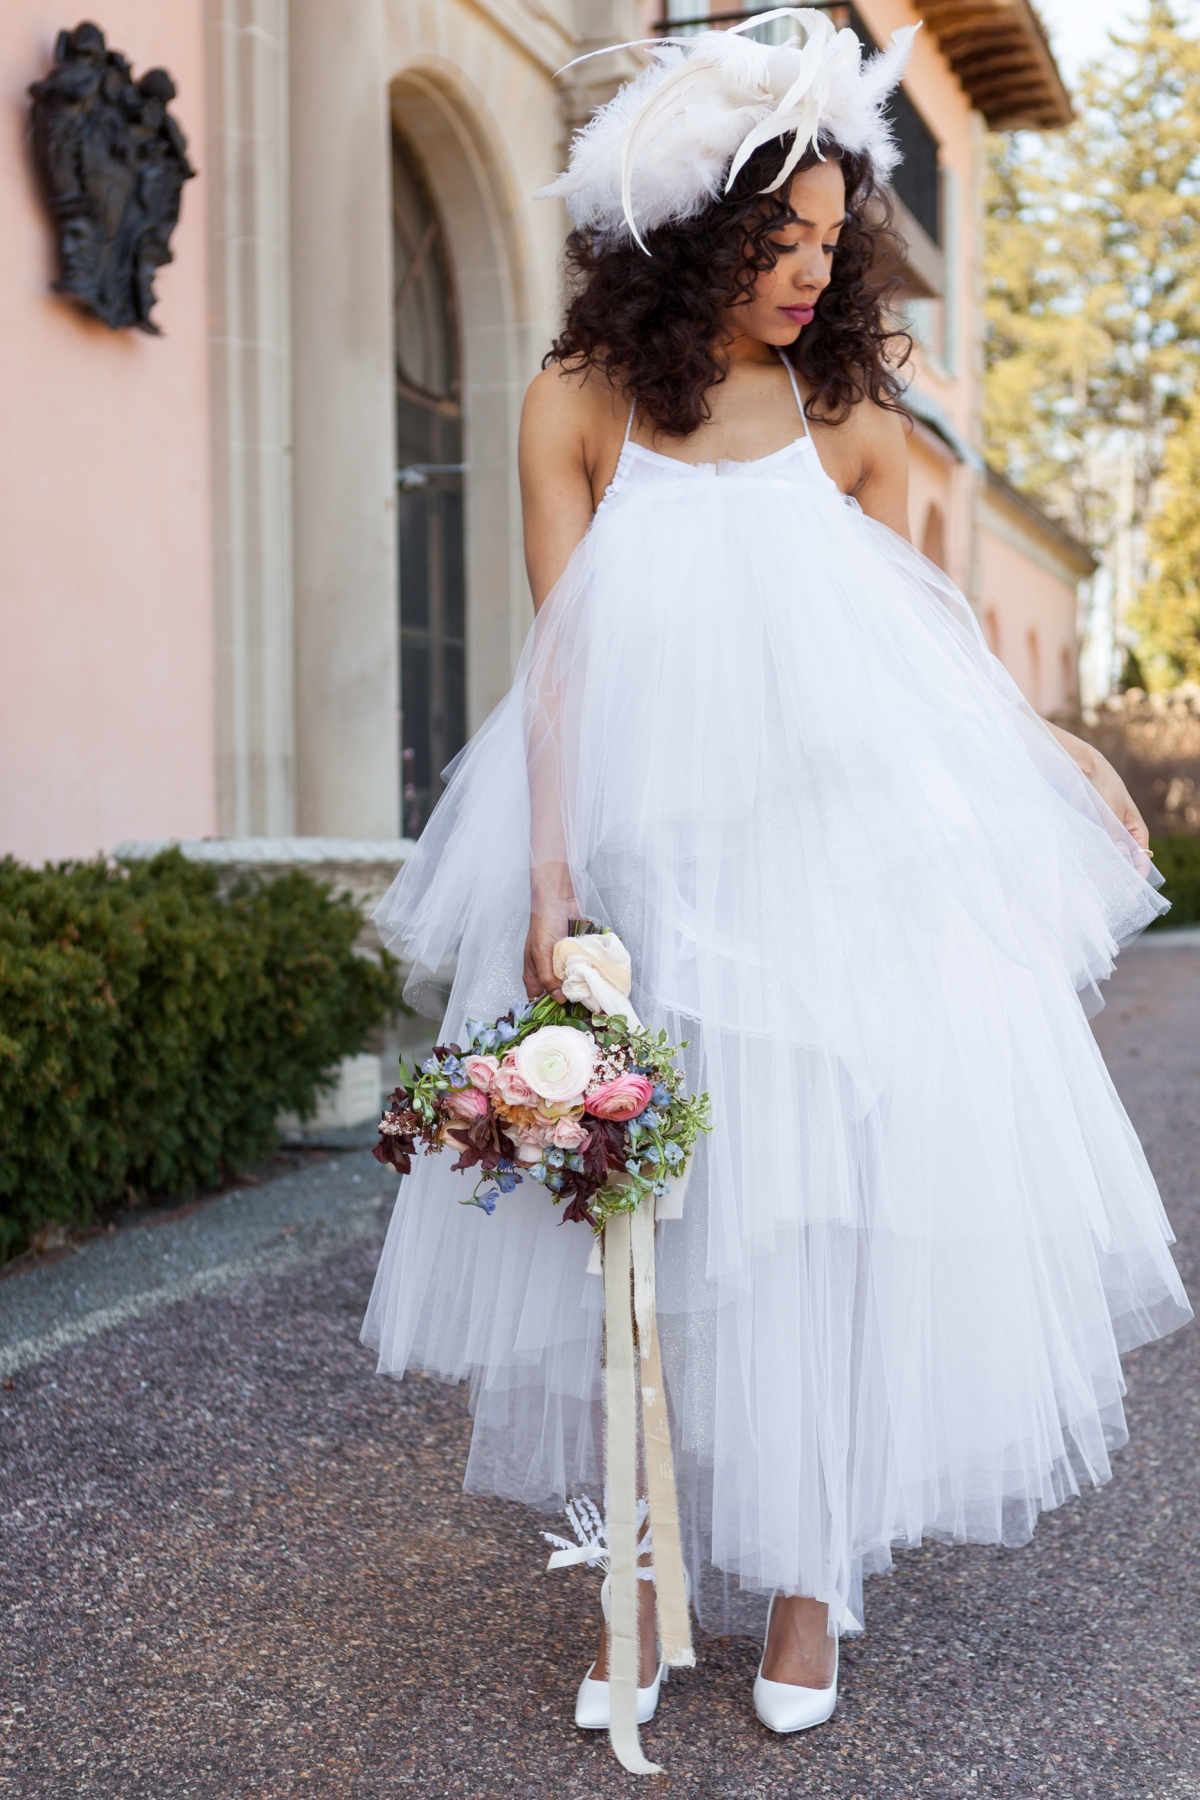 Cuneo Mansion High Fashion Wedding Inspiration 56